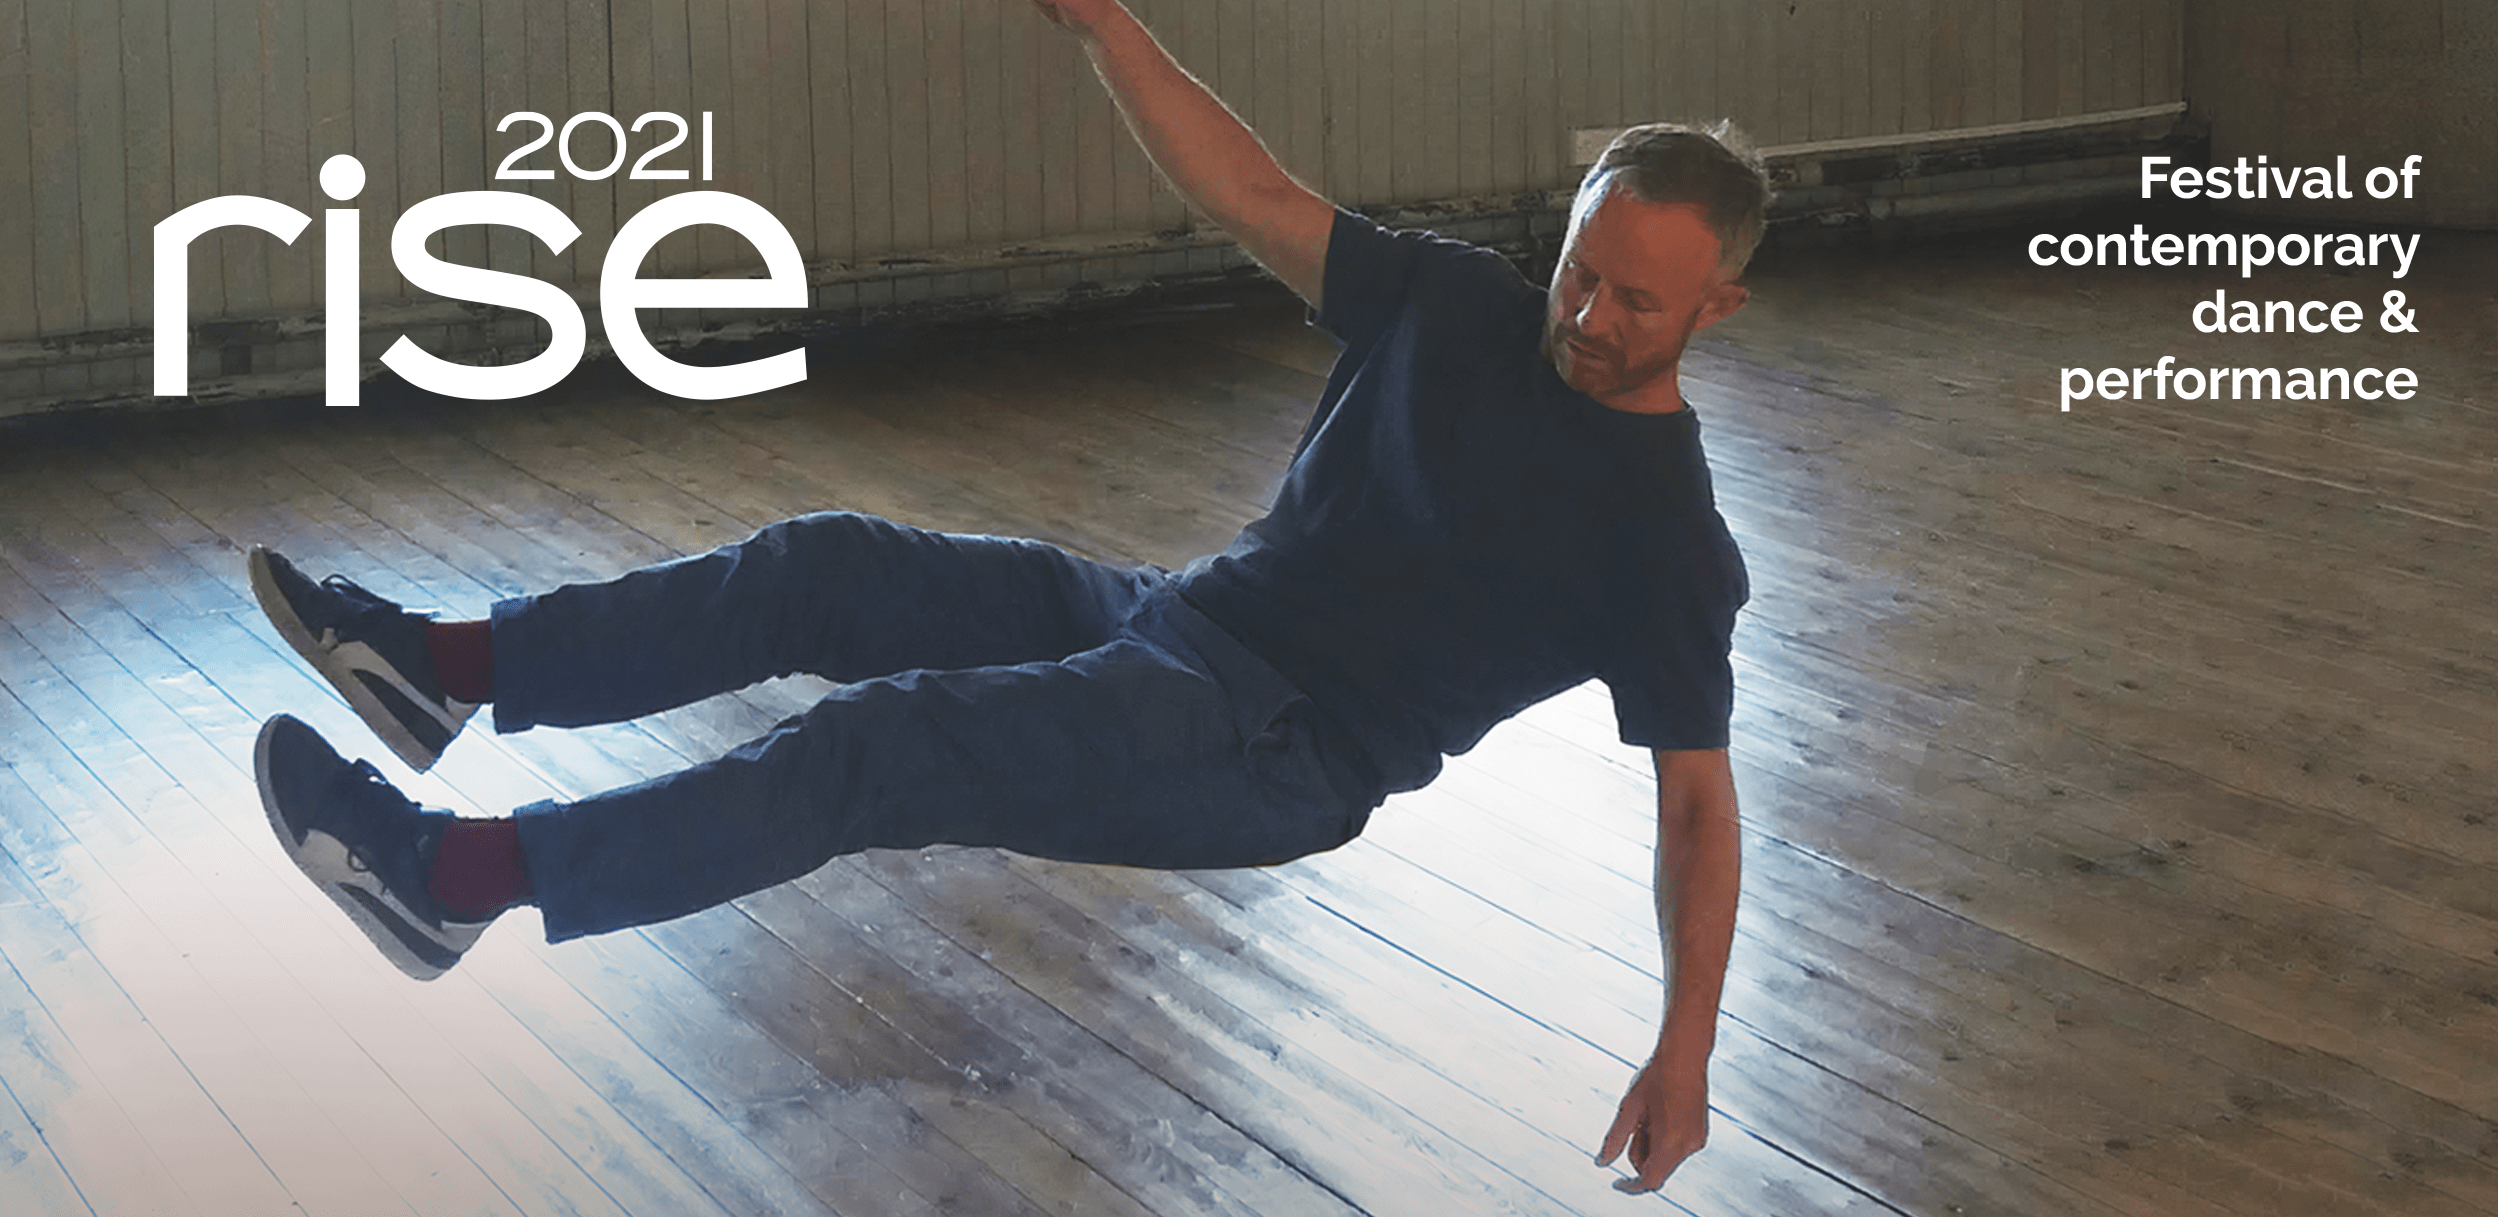 Featured dancer Charlie Morrissey is suspended in mid-air above the floor in a dance studio. Text reads: RISE 2021, festival of contemporary dance & performance.